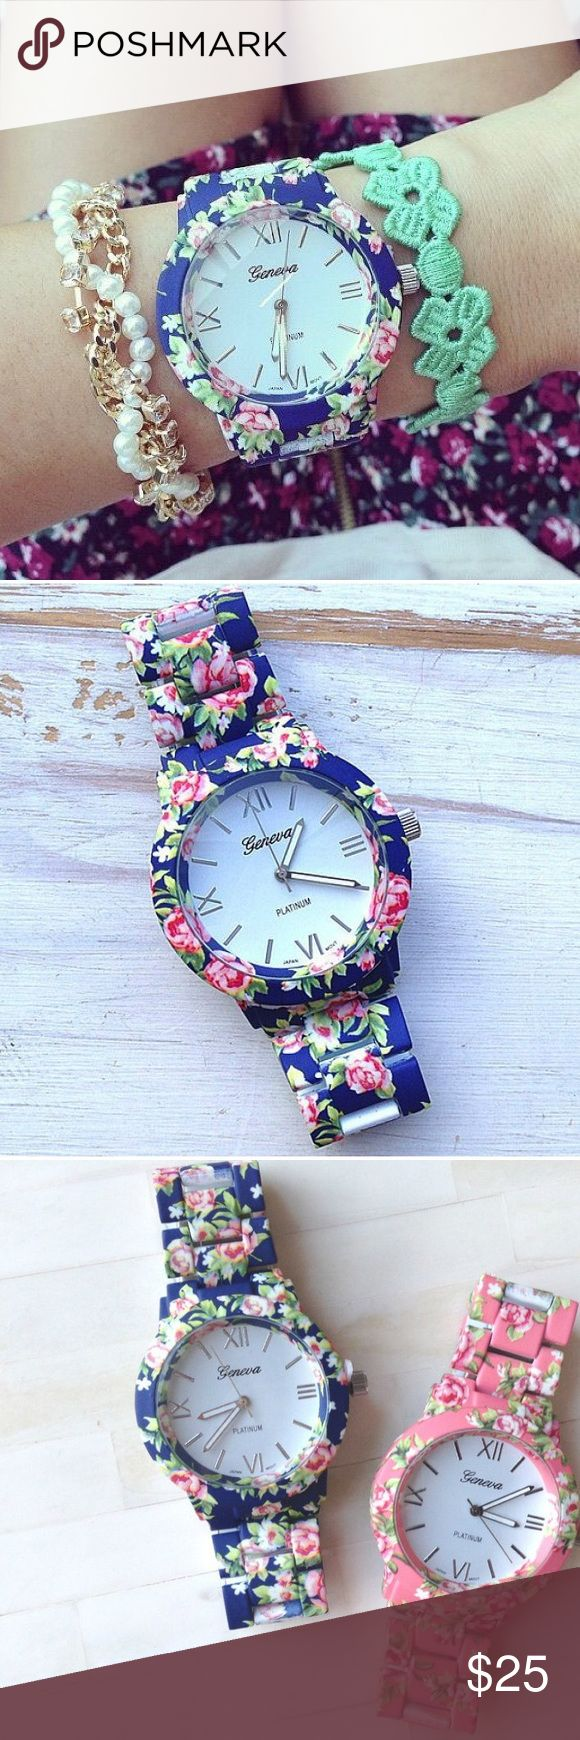 Floral Large Face Arm Candy Watch Geneva Blue floral watch, brand new with tags. Comes in a Watch box. Steel water resistant frame. Tobi Accessories Watches